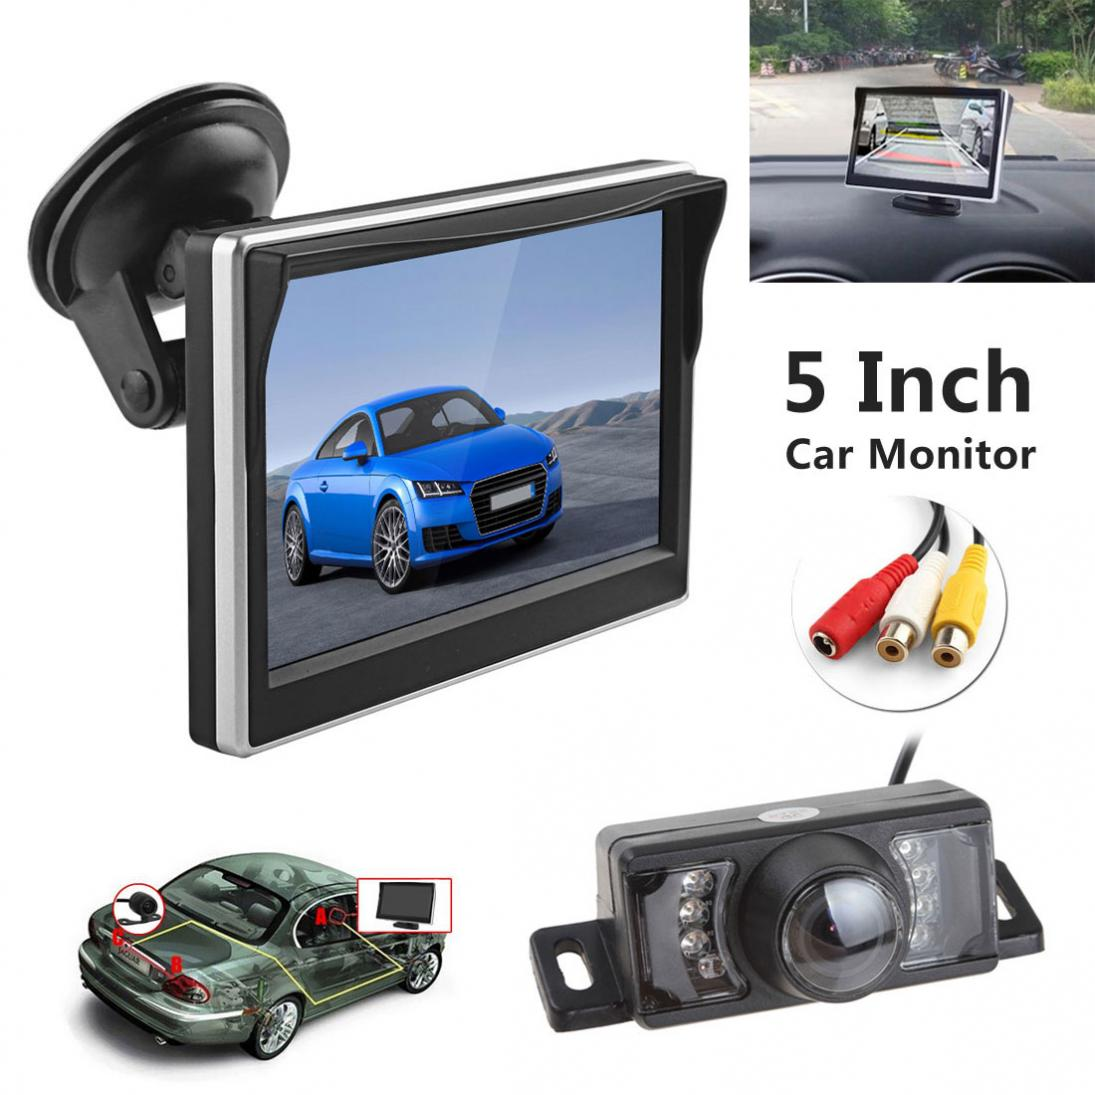 5 <font><b>Inch</b></font> TFT LCD Screen 480 x 272 HD Digital Color Car Rear View <font><b>Monitor</b></font> + <font><b>7</b></font> IR Lights Water-proof 120 Degree Car Rear Camera image